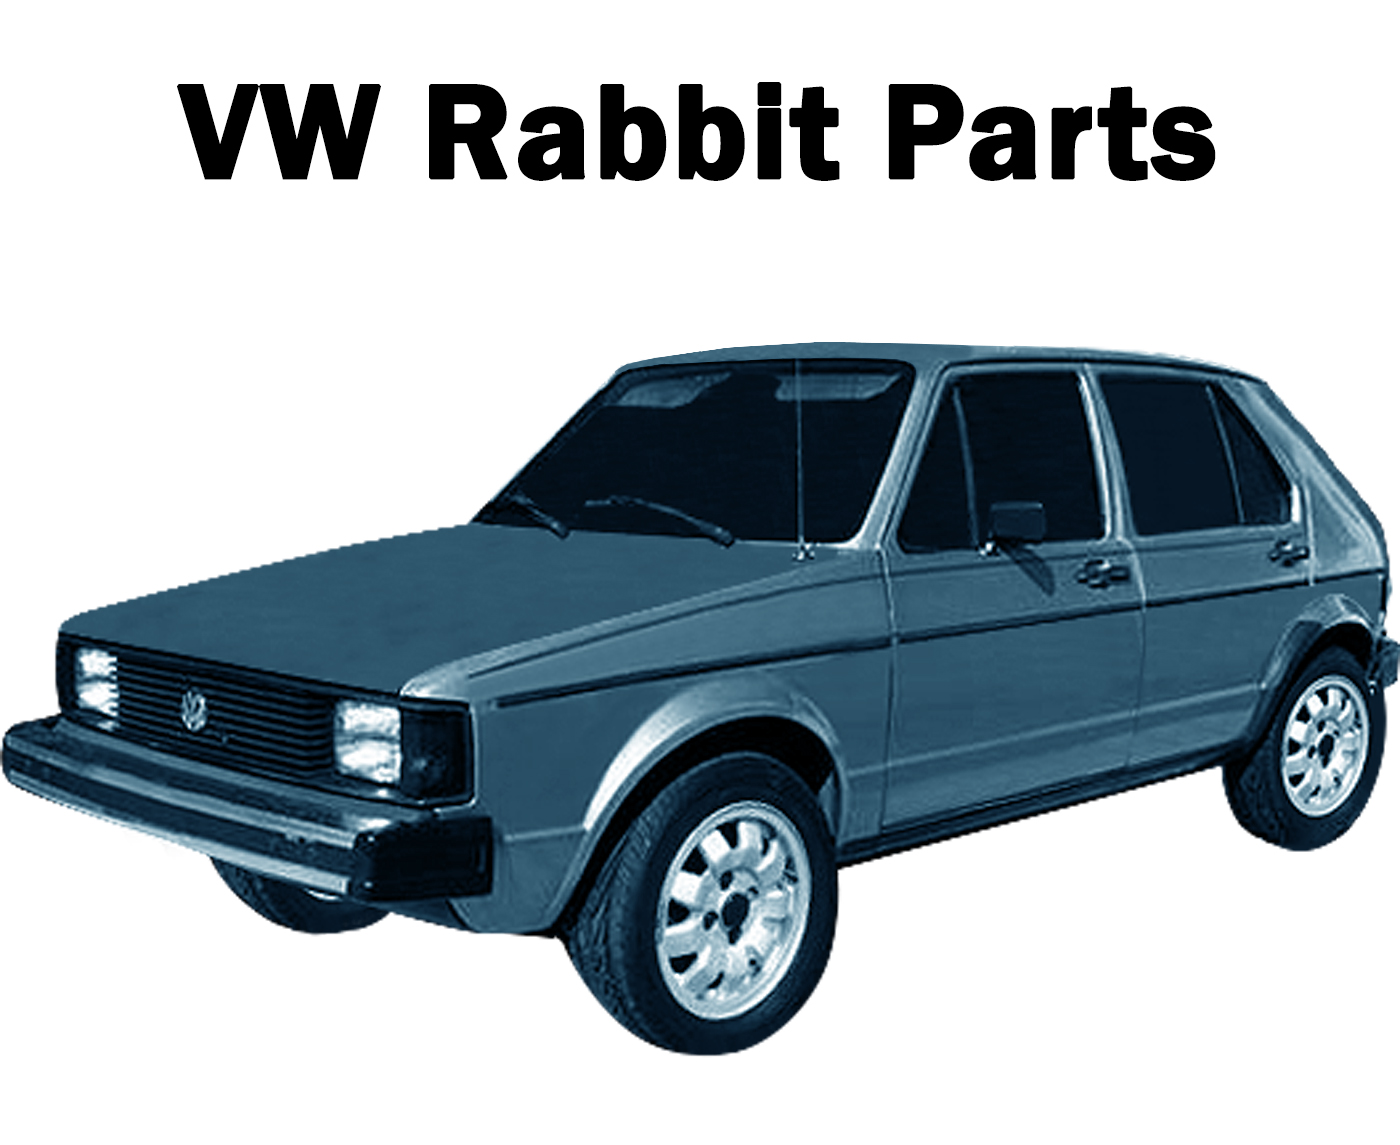 Volkswagen Rabbit #23